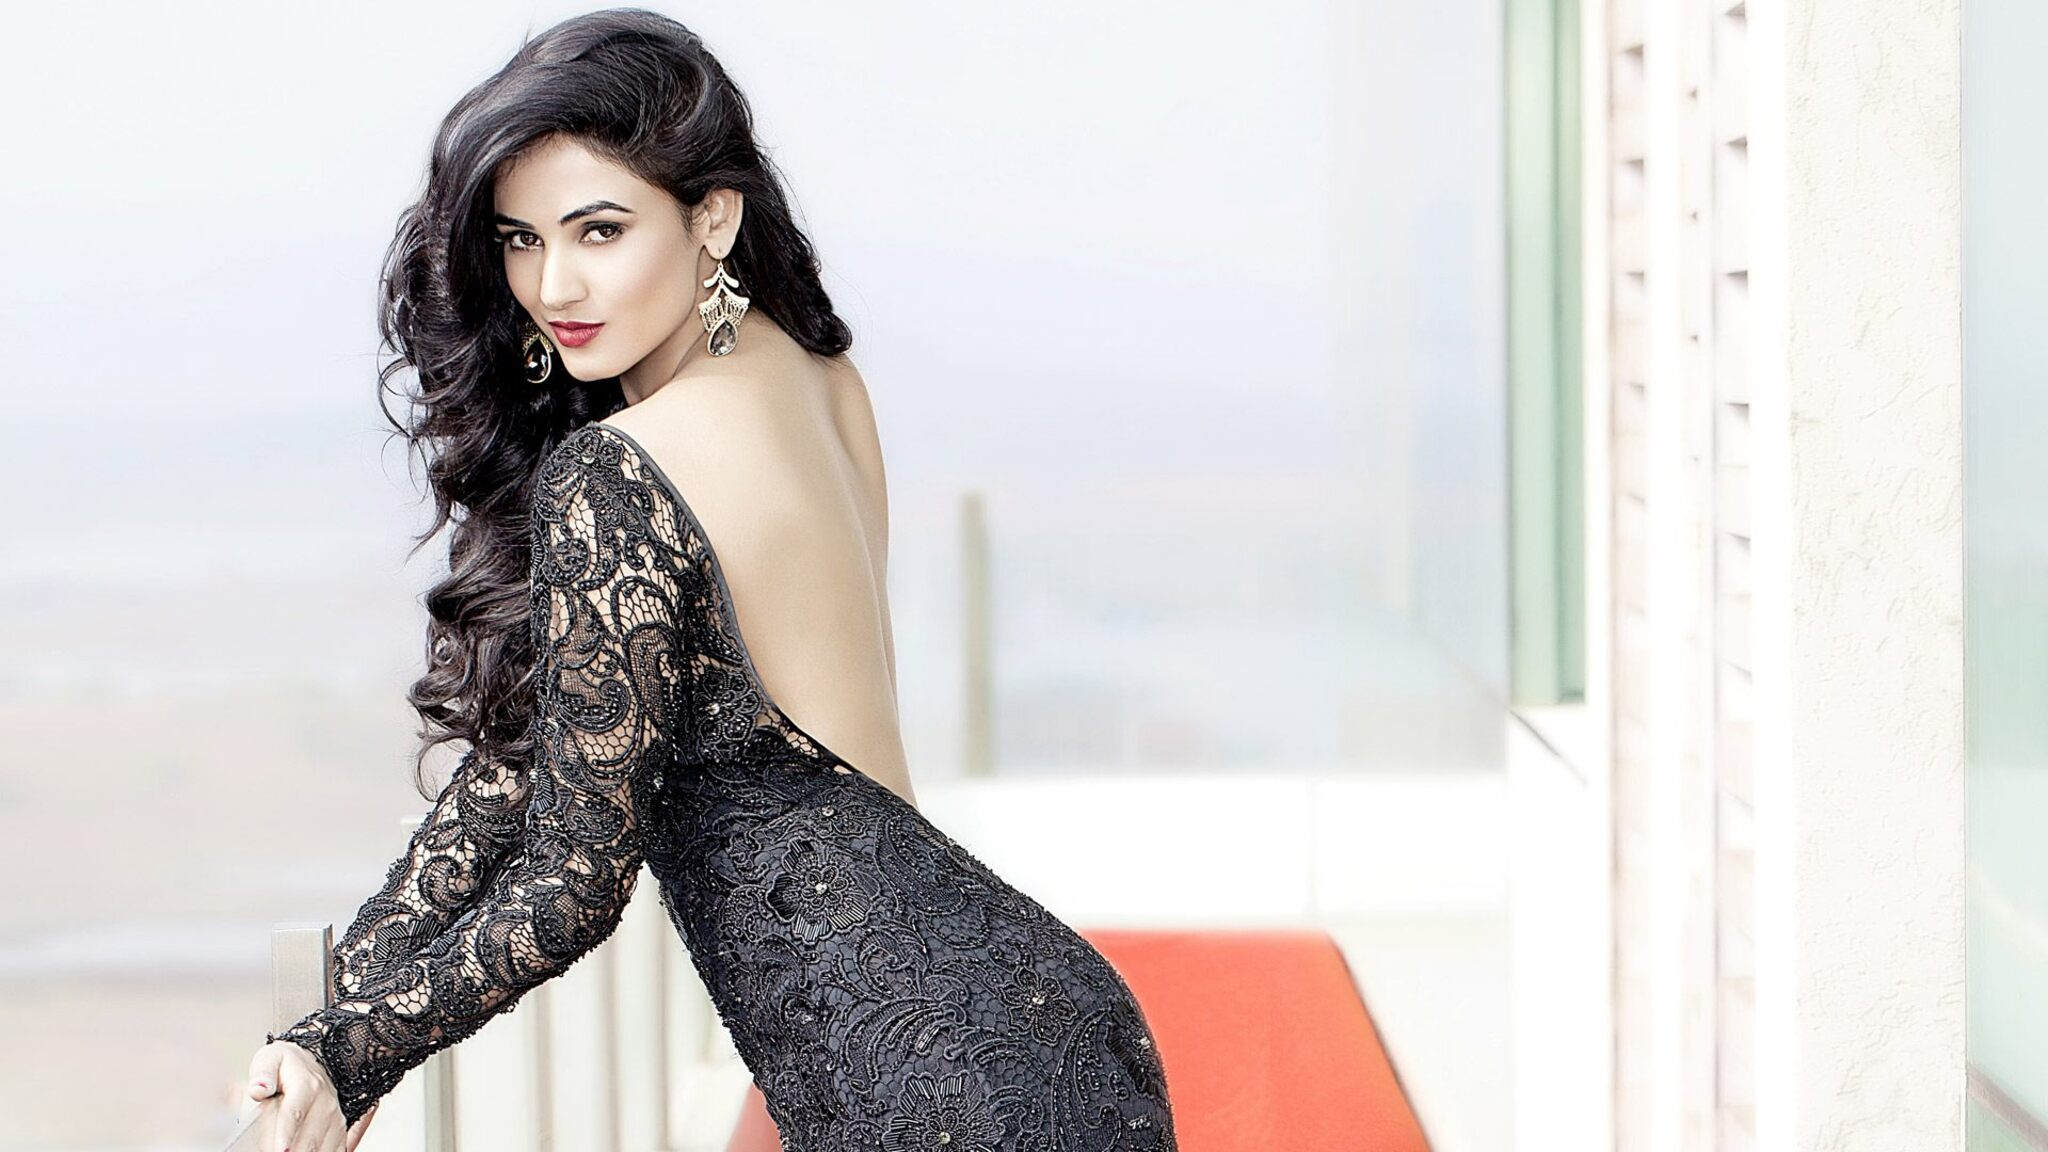 2048x1152 sonal chauhan photoshoot 2048x1152 resolution hd 4k